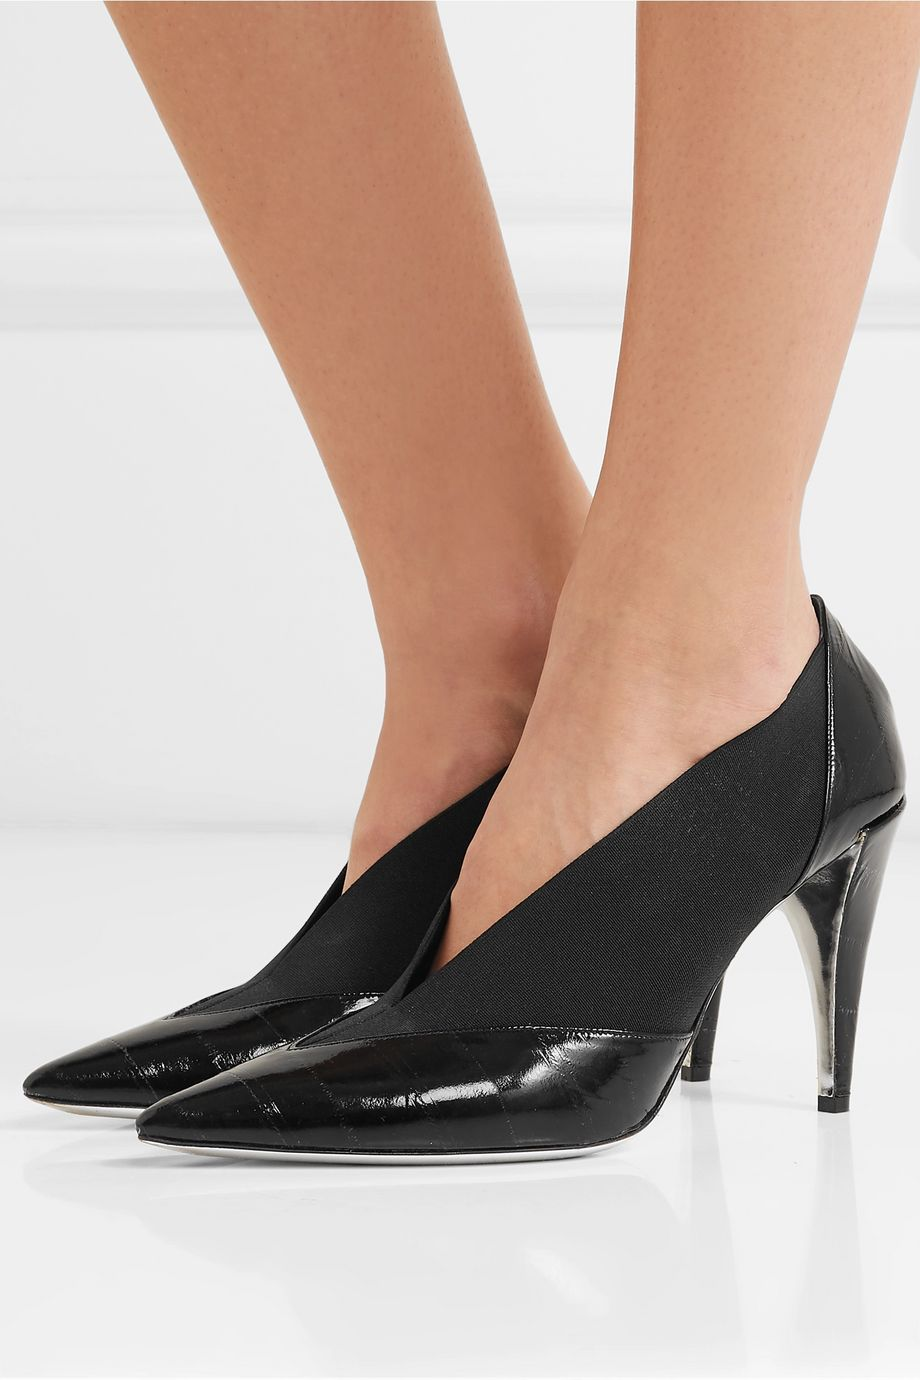 Givenchy Croc-effect leather and elastic pumps